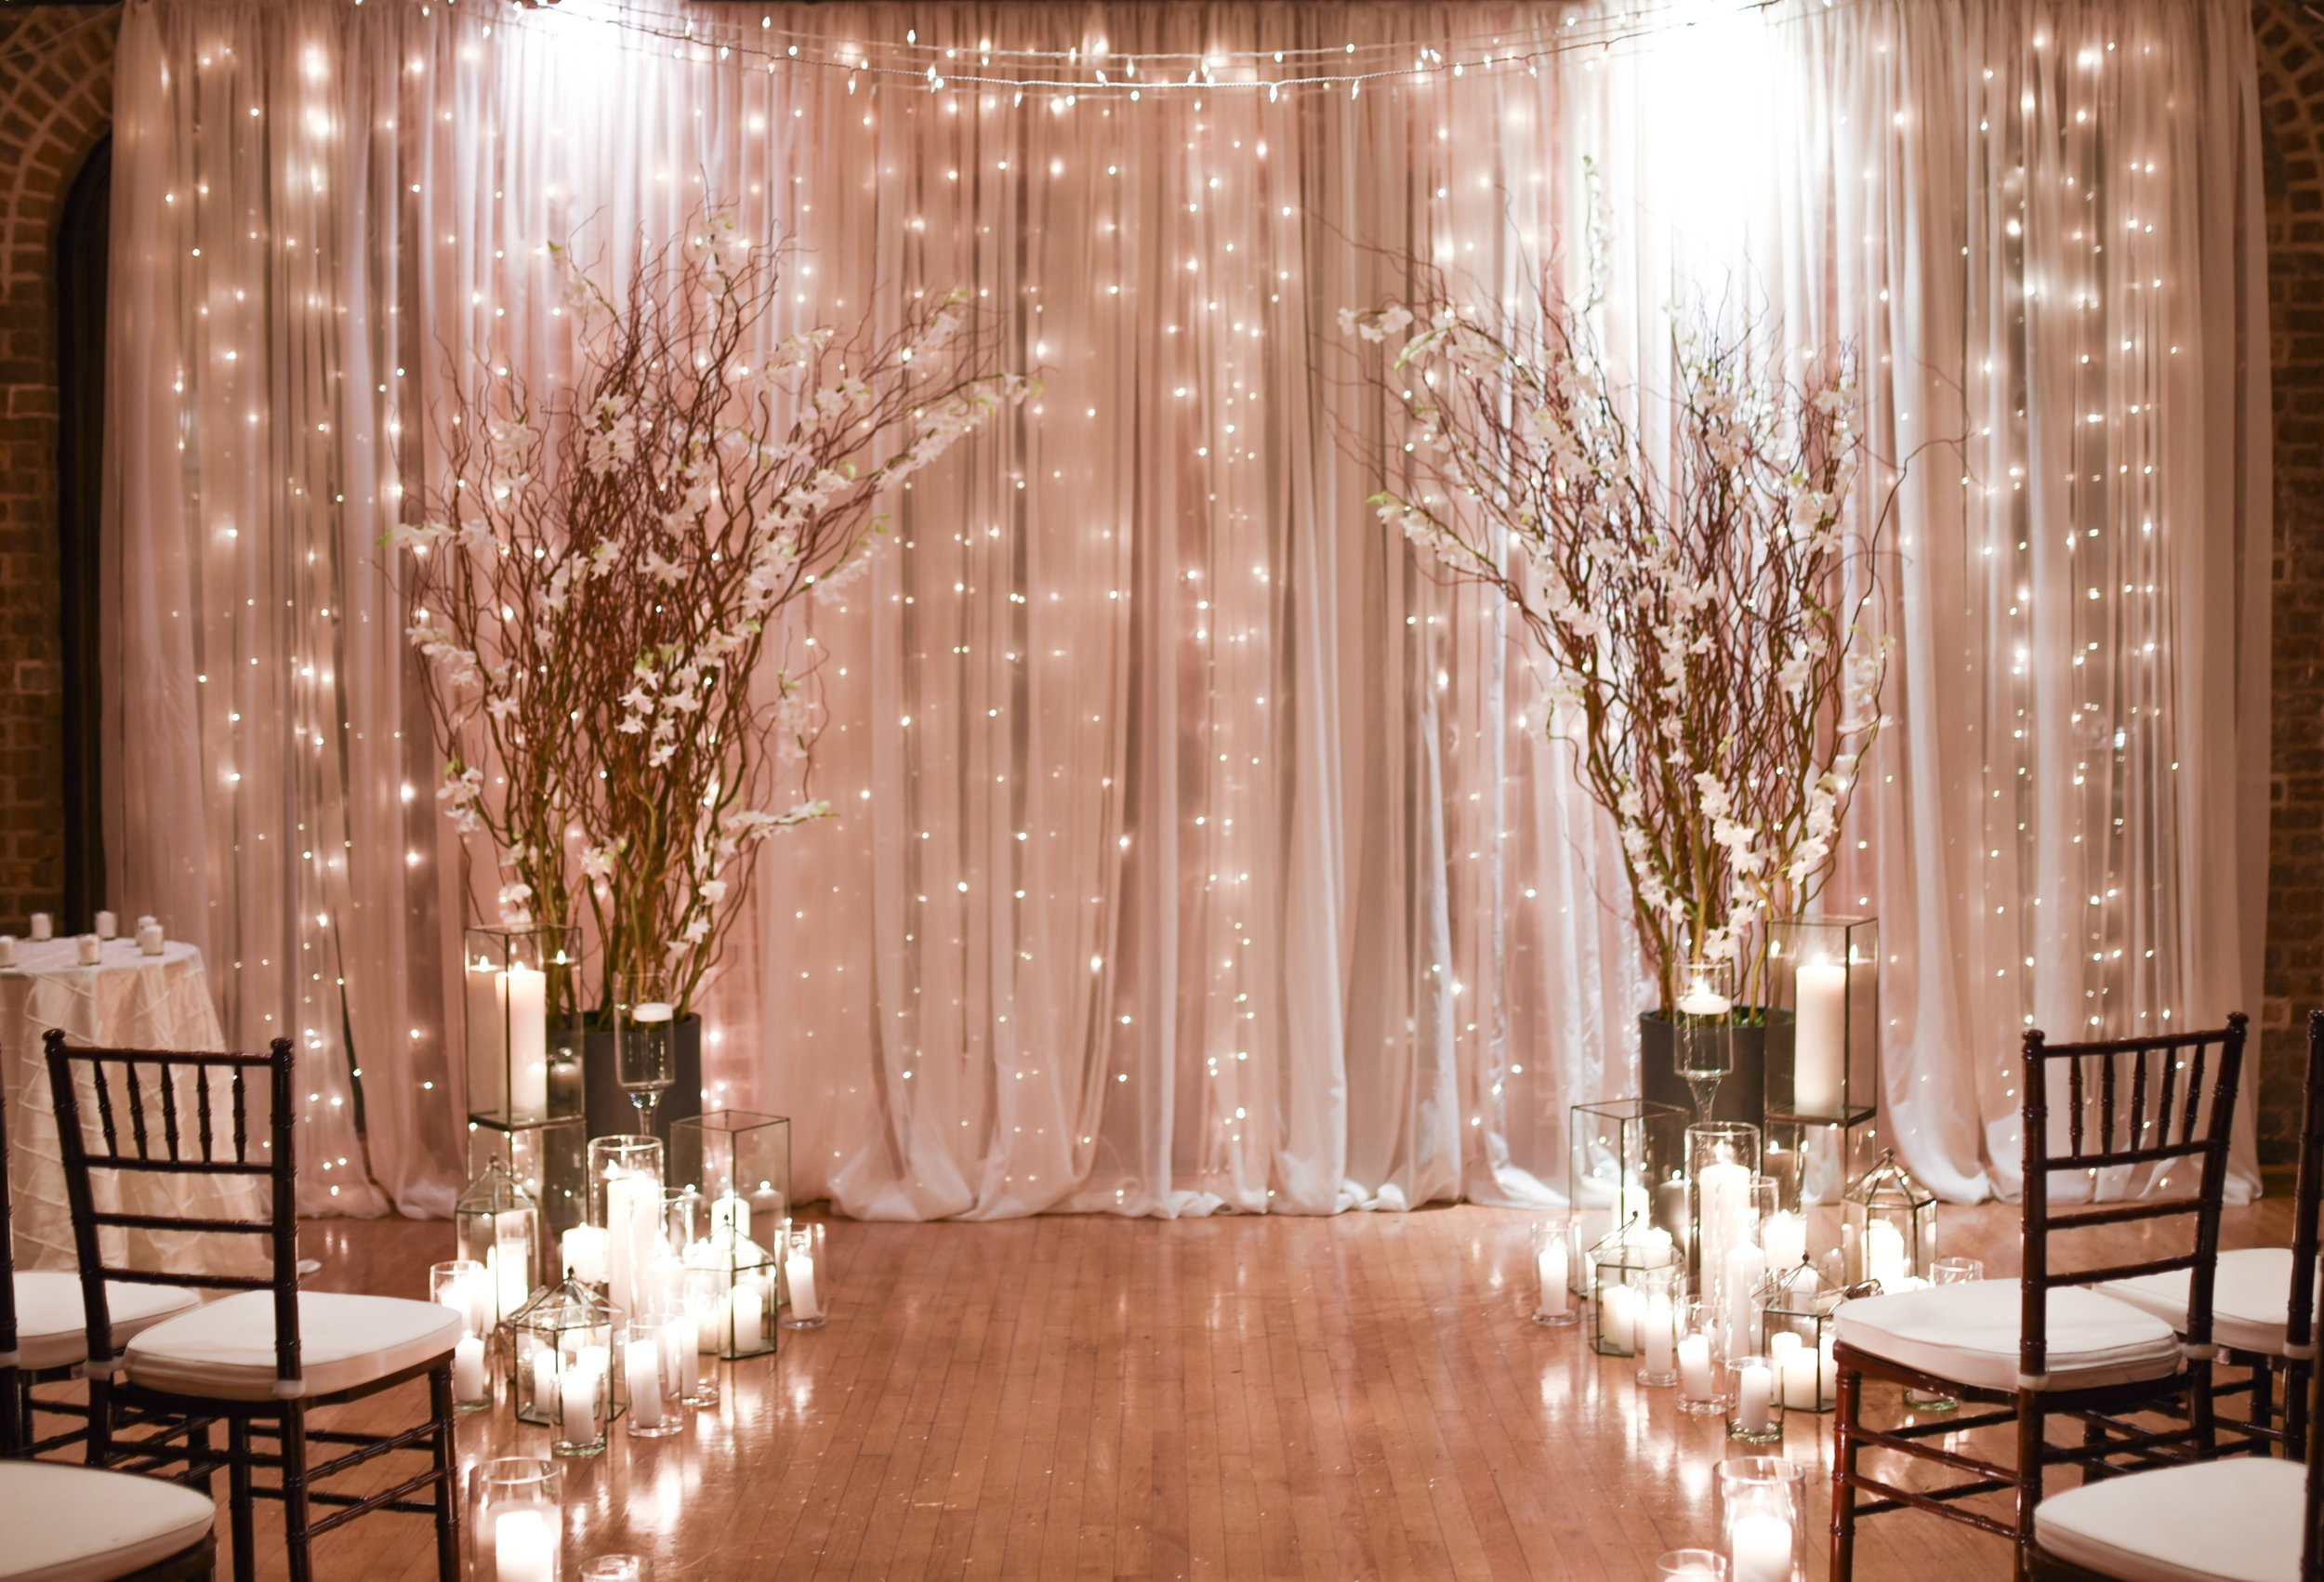 A glowing ceremony backdrop of curly willow, white orchids, and staggered candles